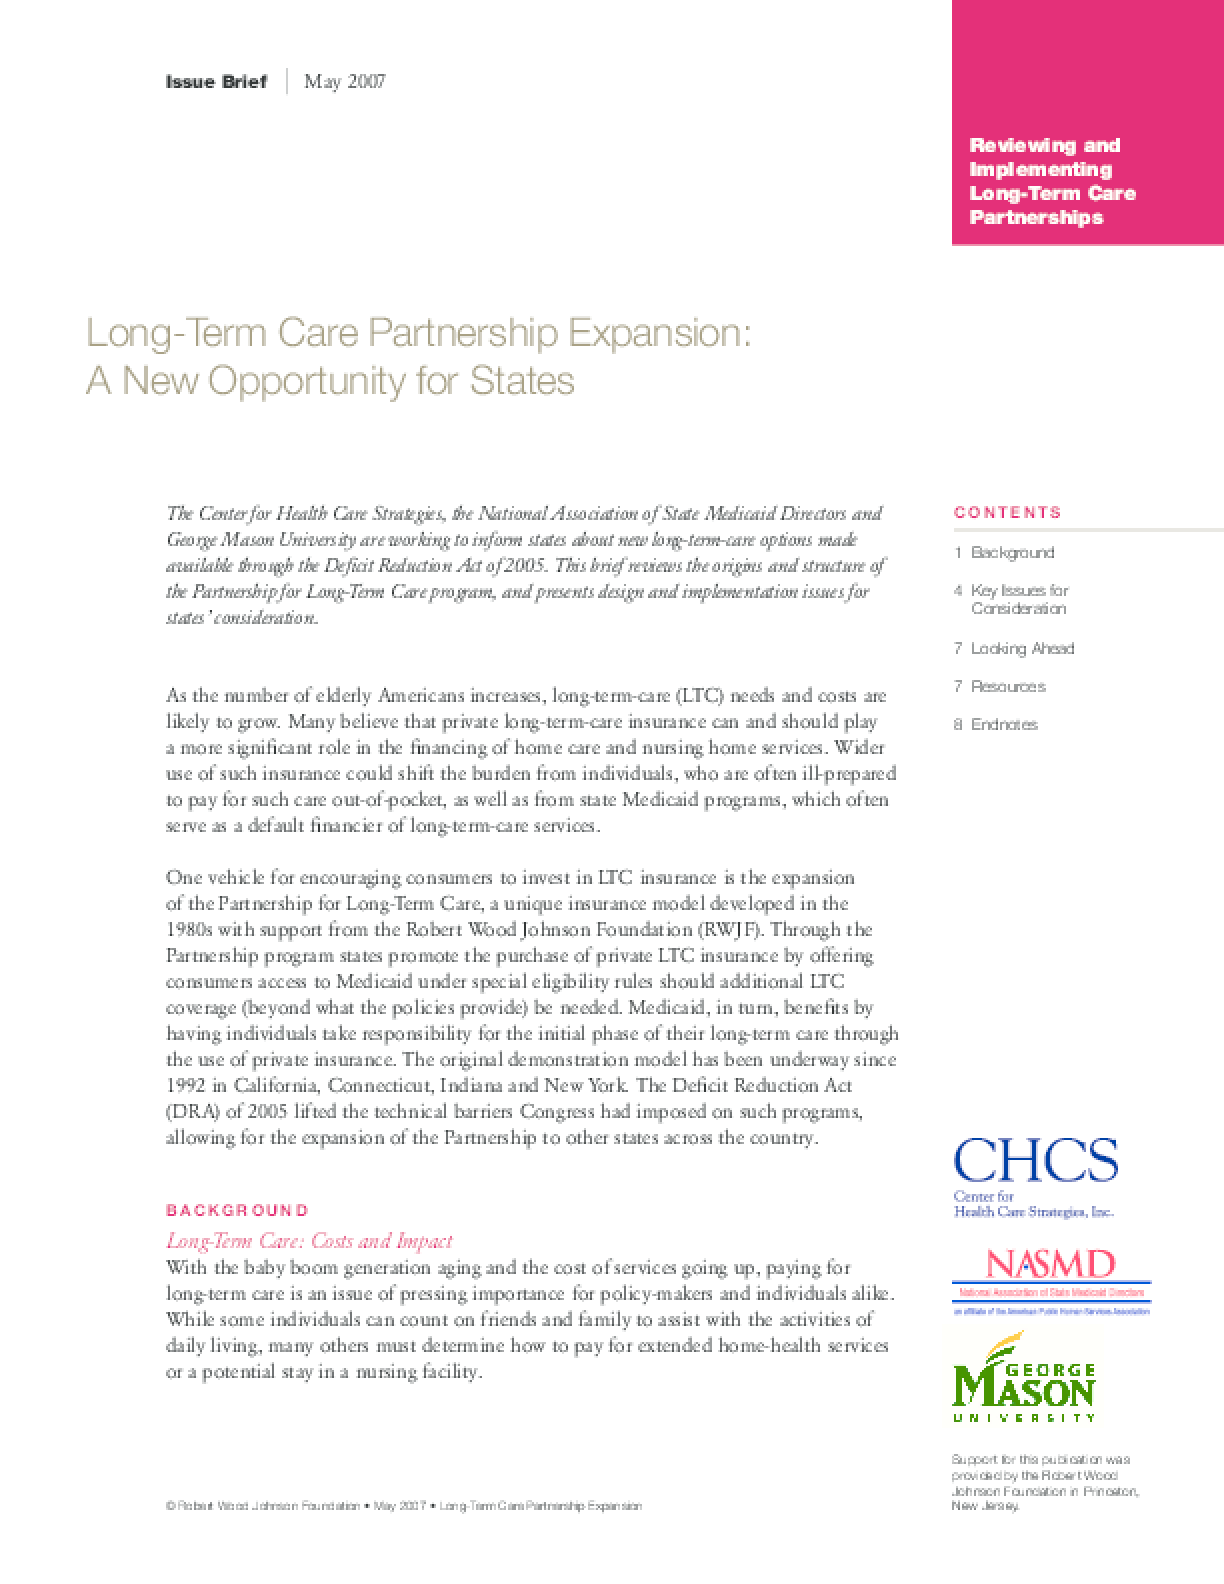 Long-Term Care Partnership Expansion: A New Opportunity for States